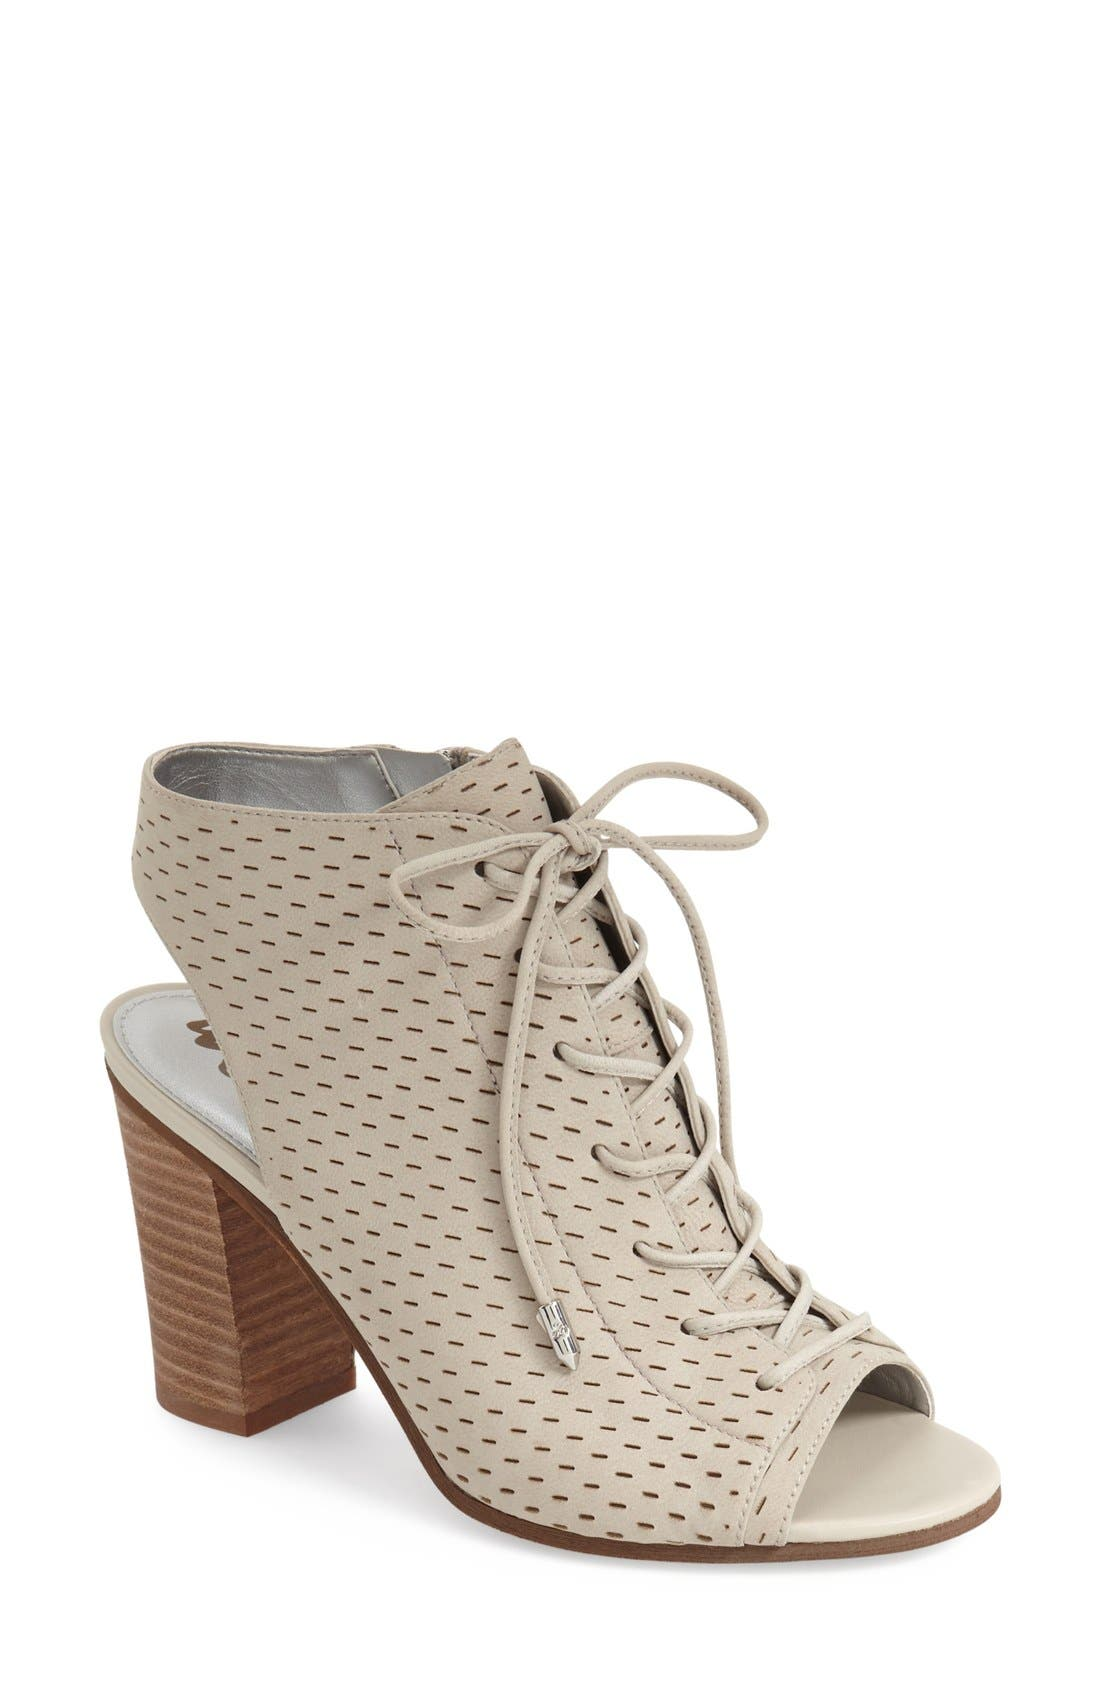 Alternate Image 1 Selected - Sam Edelman 'Ennette' Perforated Lace Up Bootie (Women)